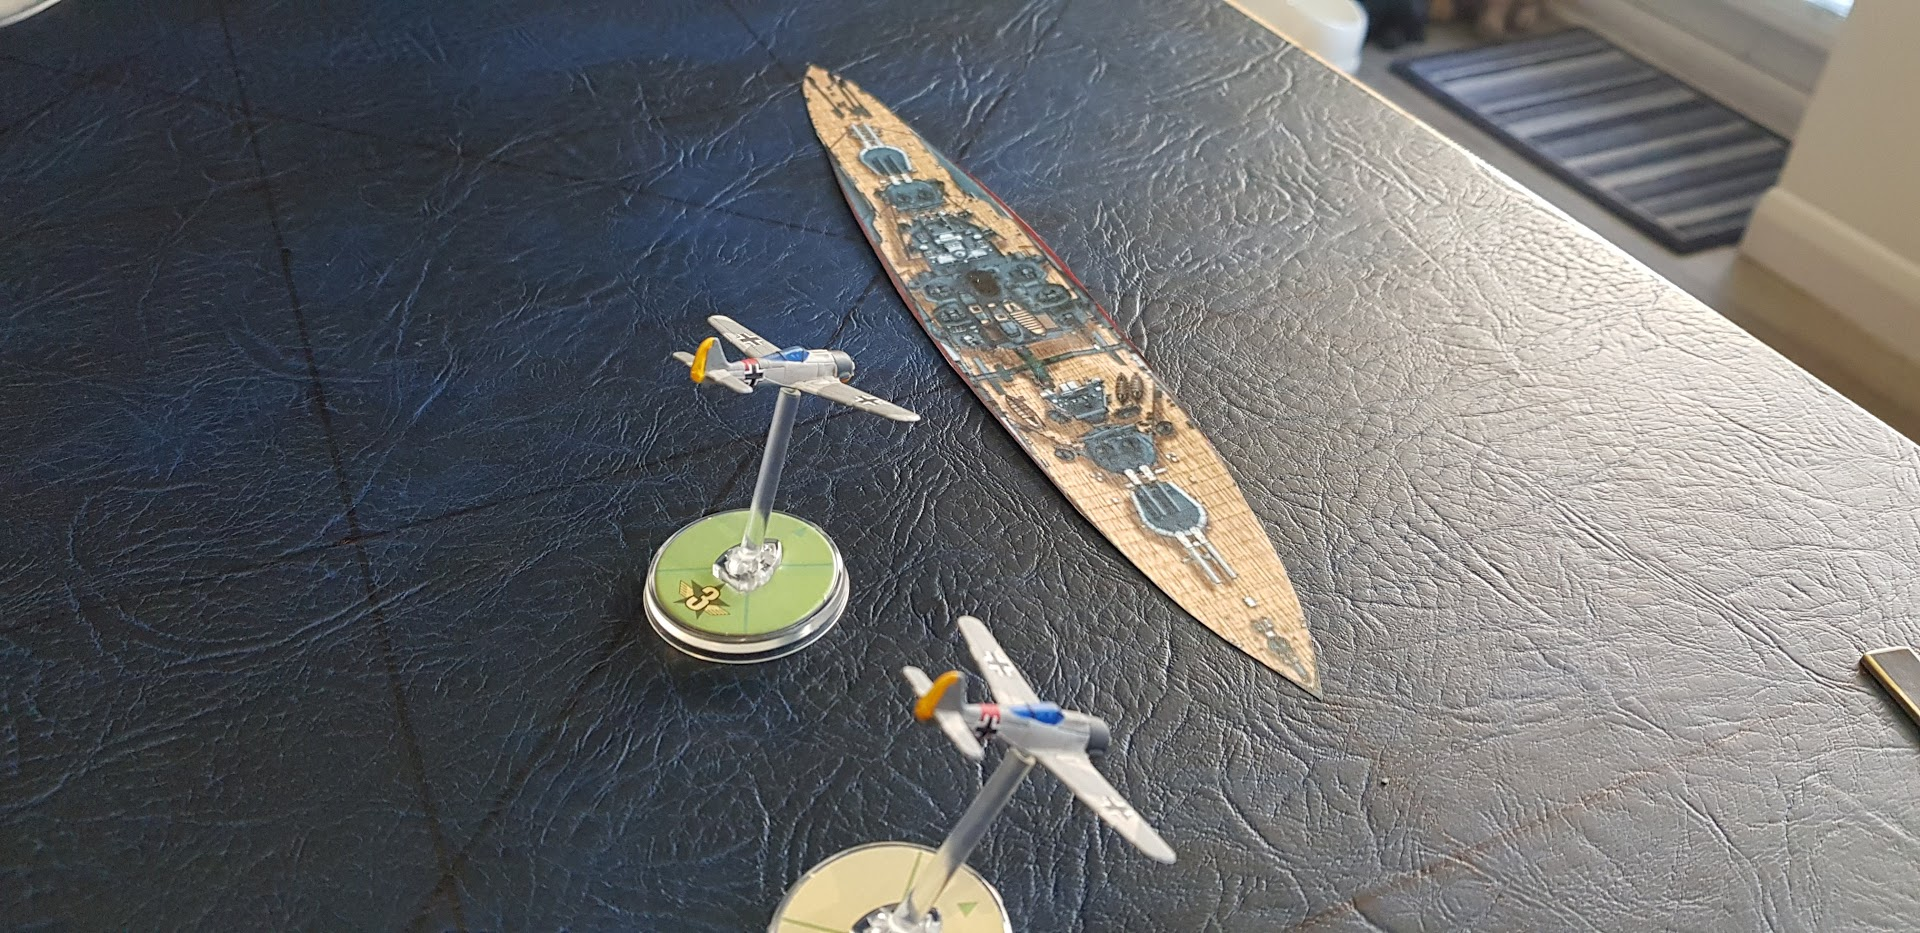 Luftdwarfer versus 603 squadron in an aerial engagement